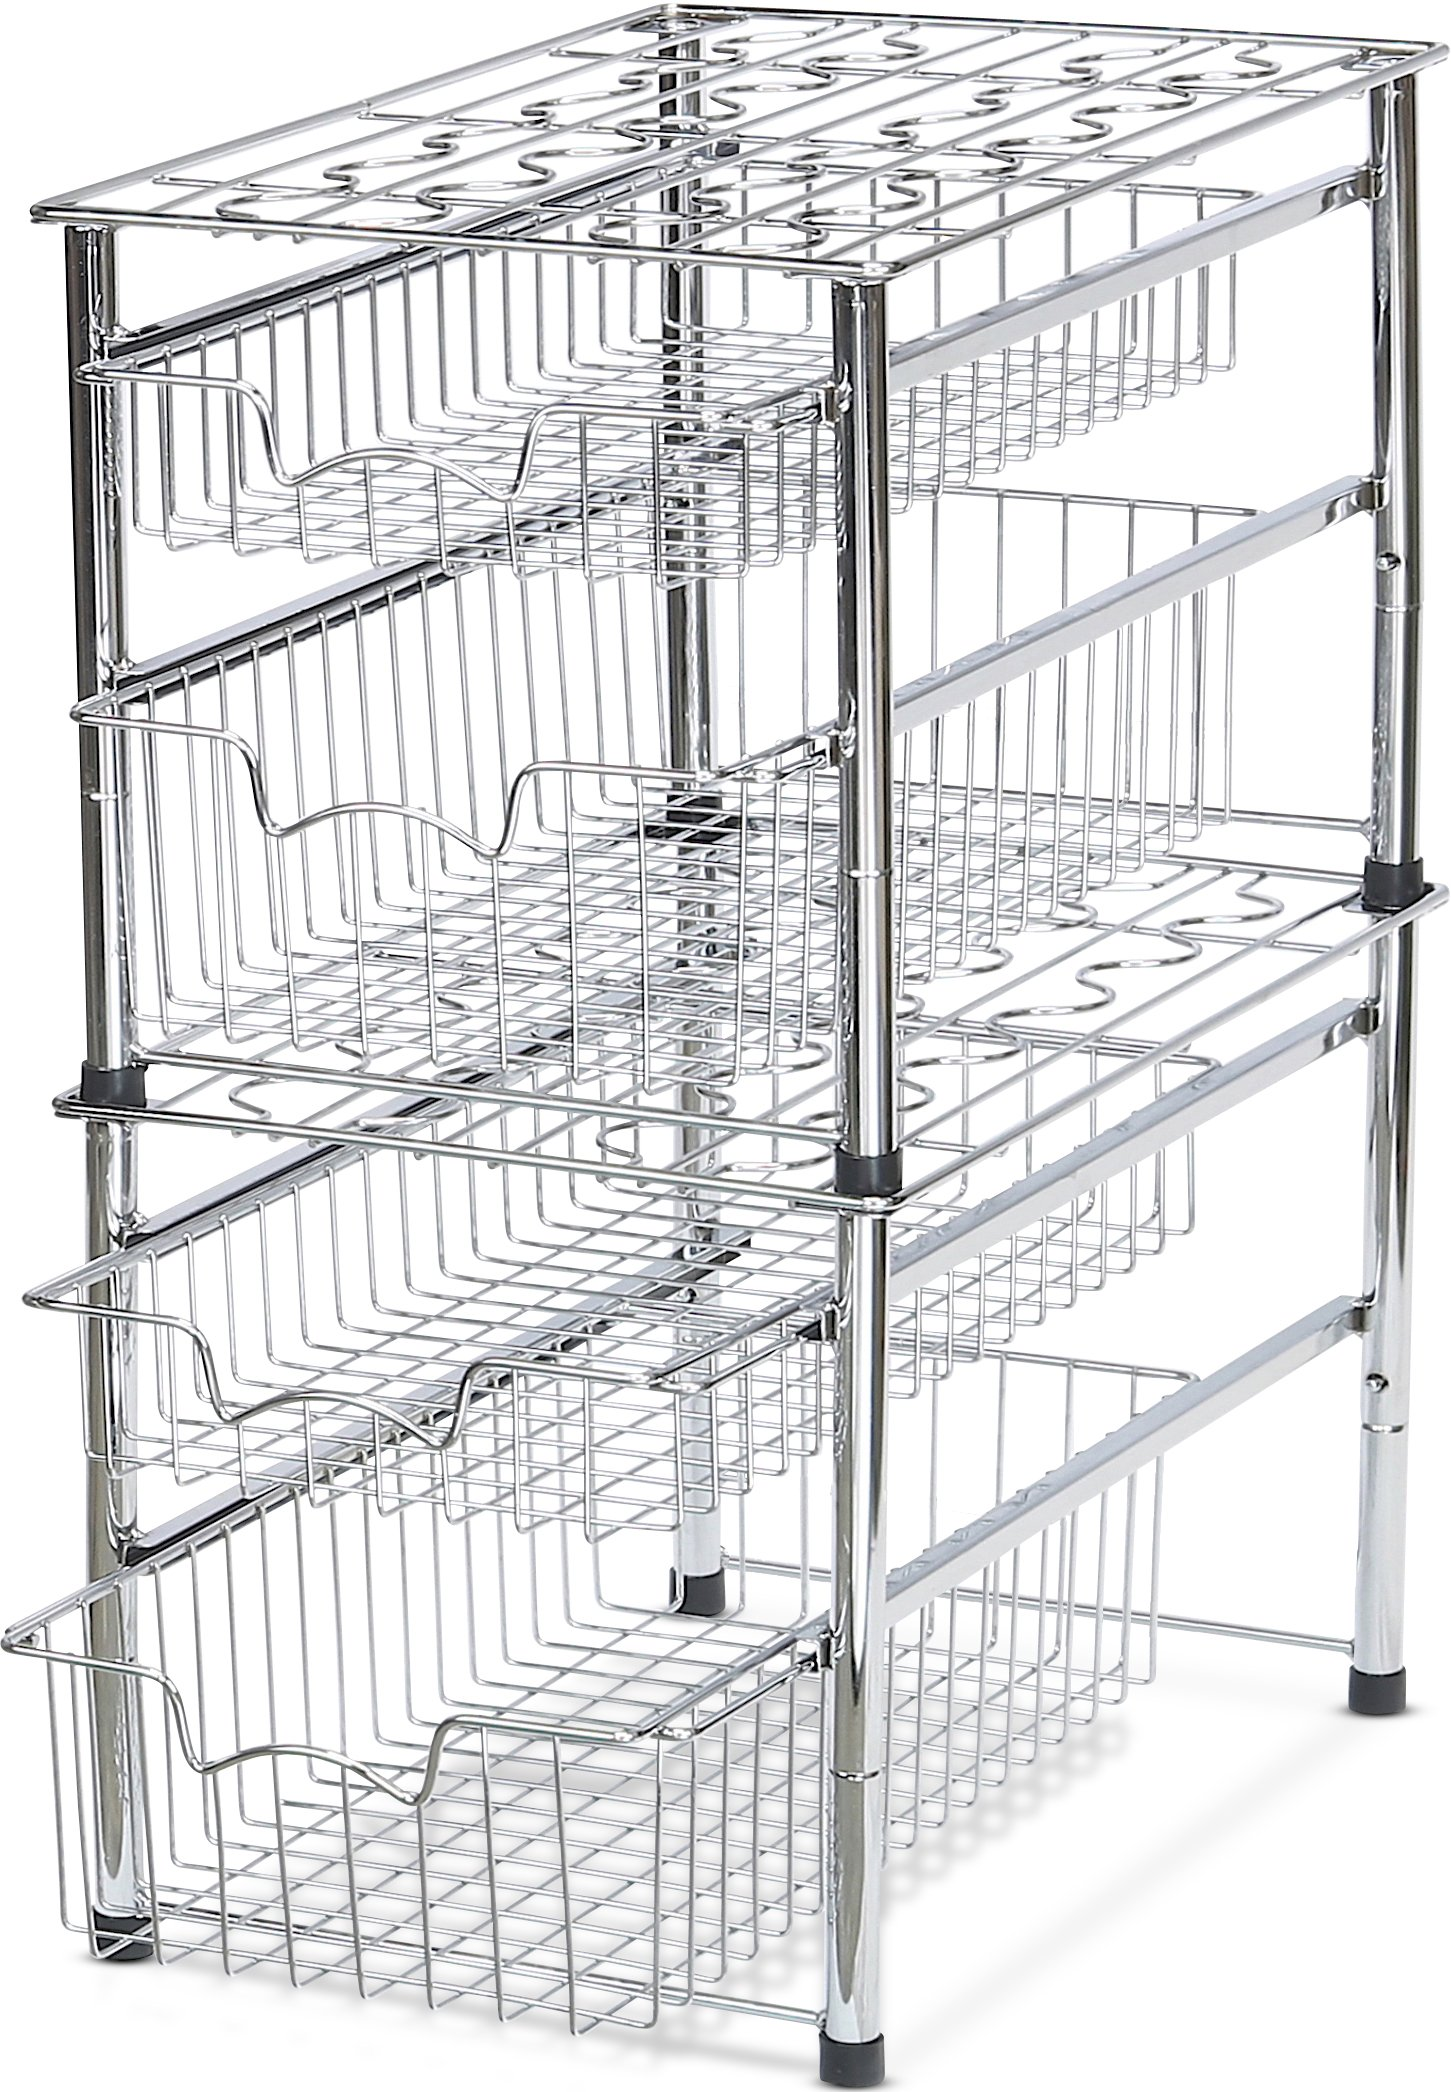 Simple Houseware Stackable 2 Tier Sliding Basket Organizer Drawer, Chrome by Simple Houseware (Image #3)